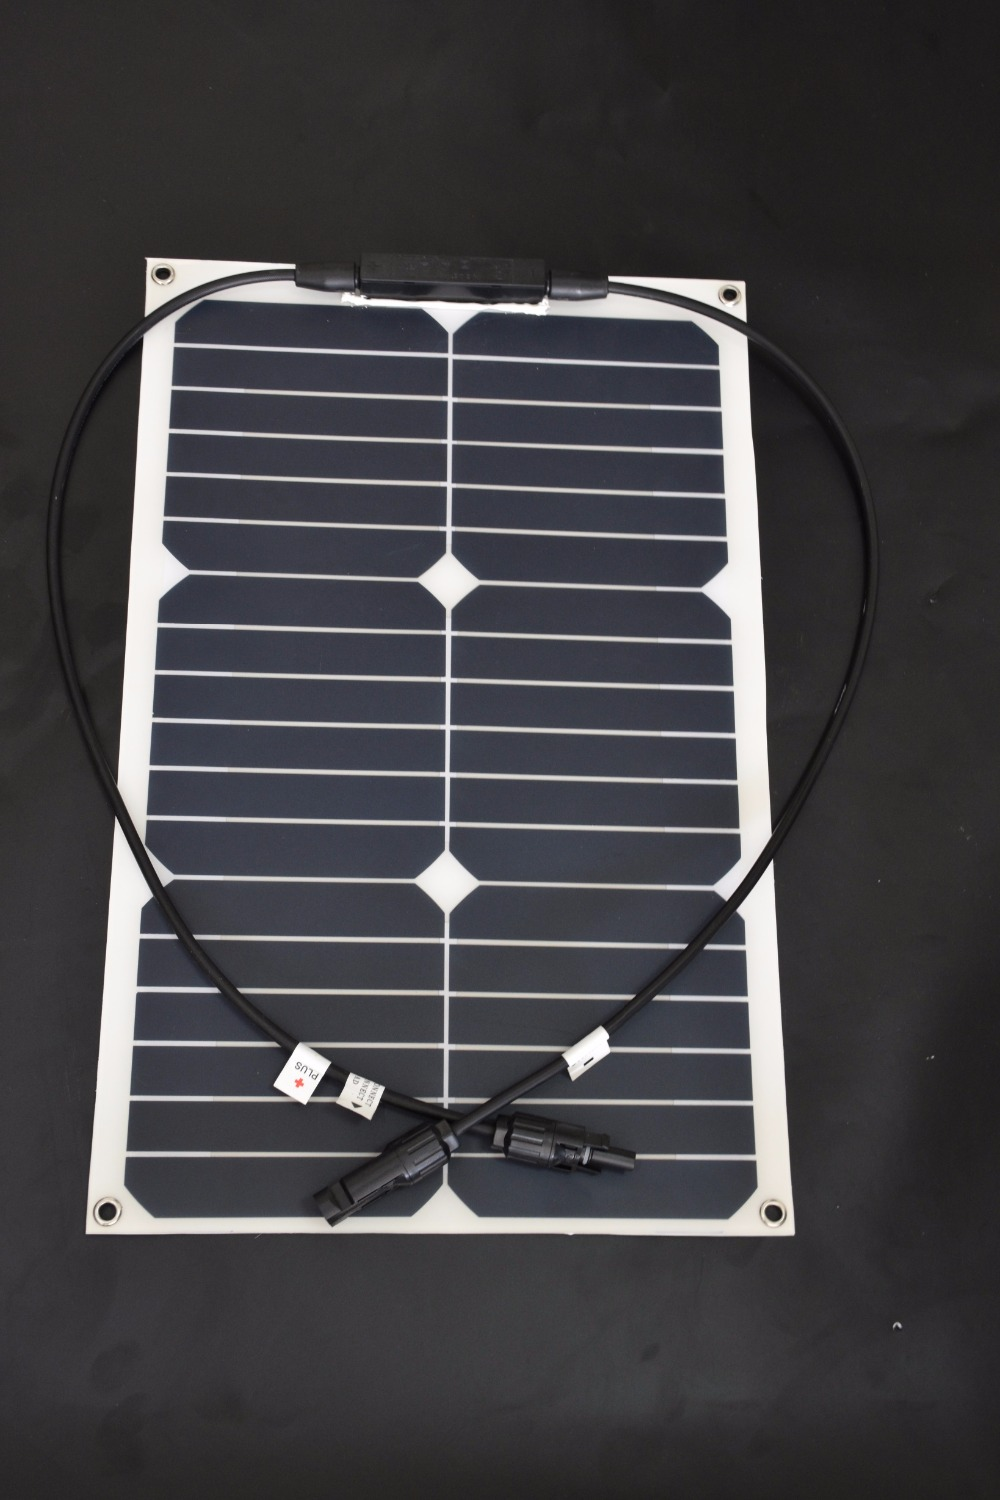 Sunpower flexible solar panel 12v 18w; monocrystalline semi flexible solar panel 18w; solar cell 19.2% charging efficiency